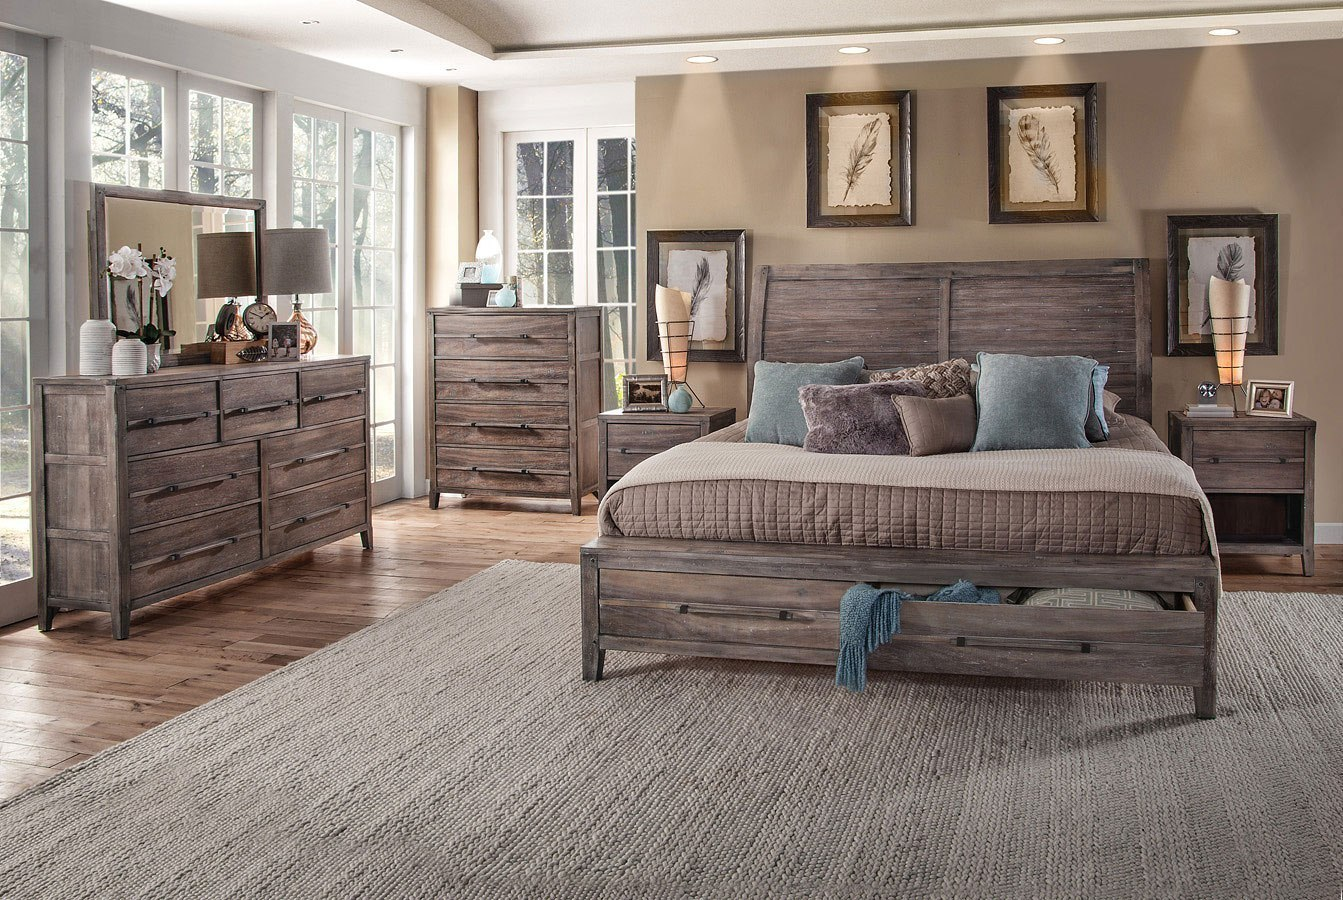 Aurora Sleigh Storage Bedroom Set Weathered Grey